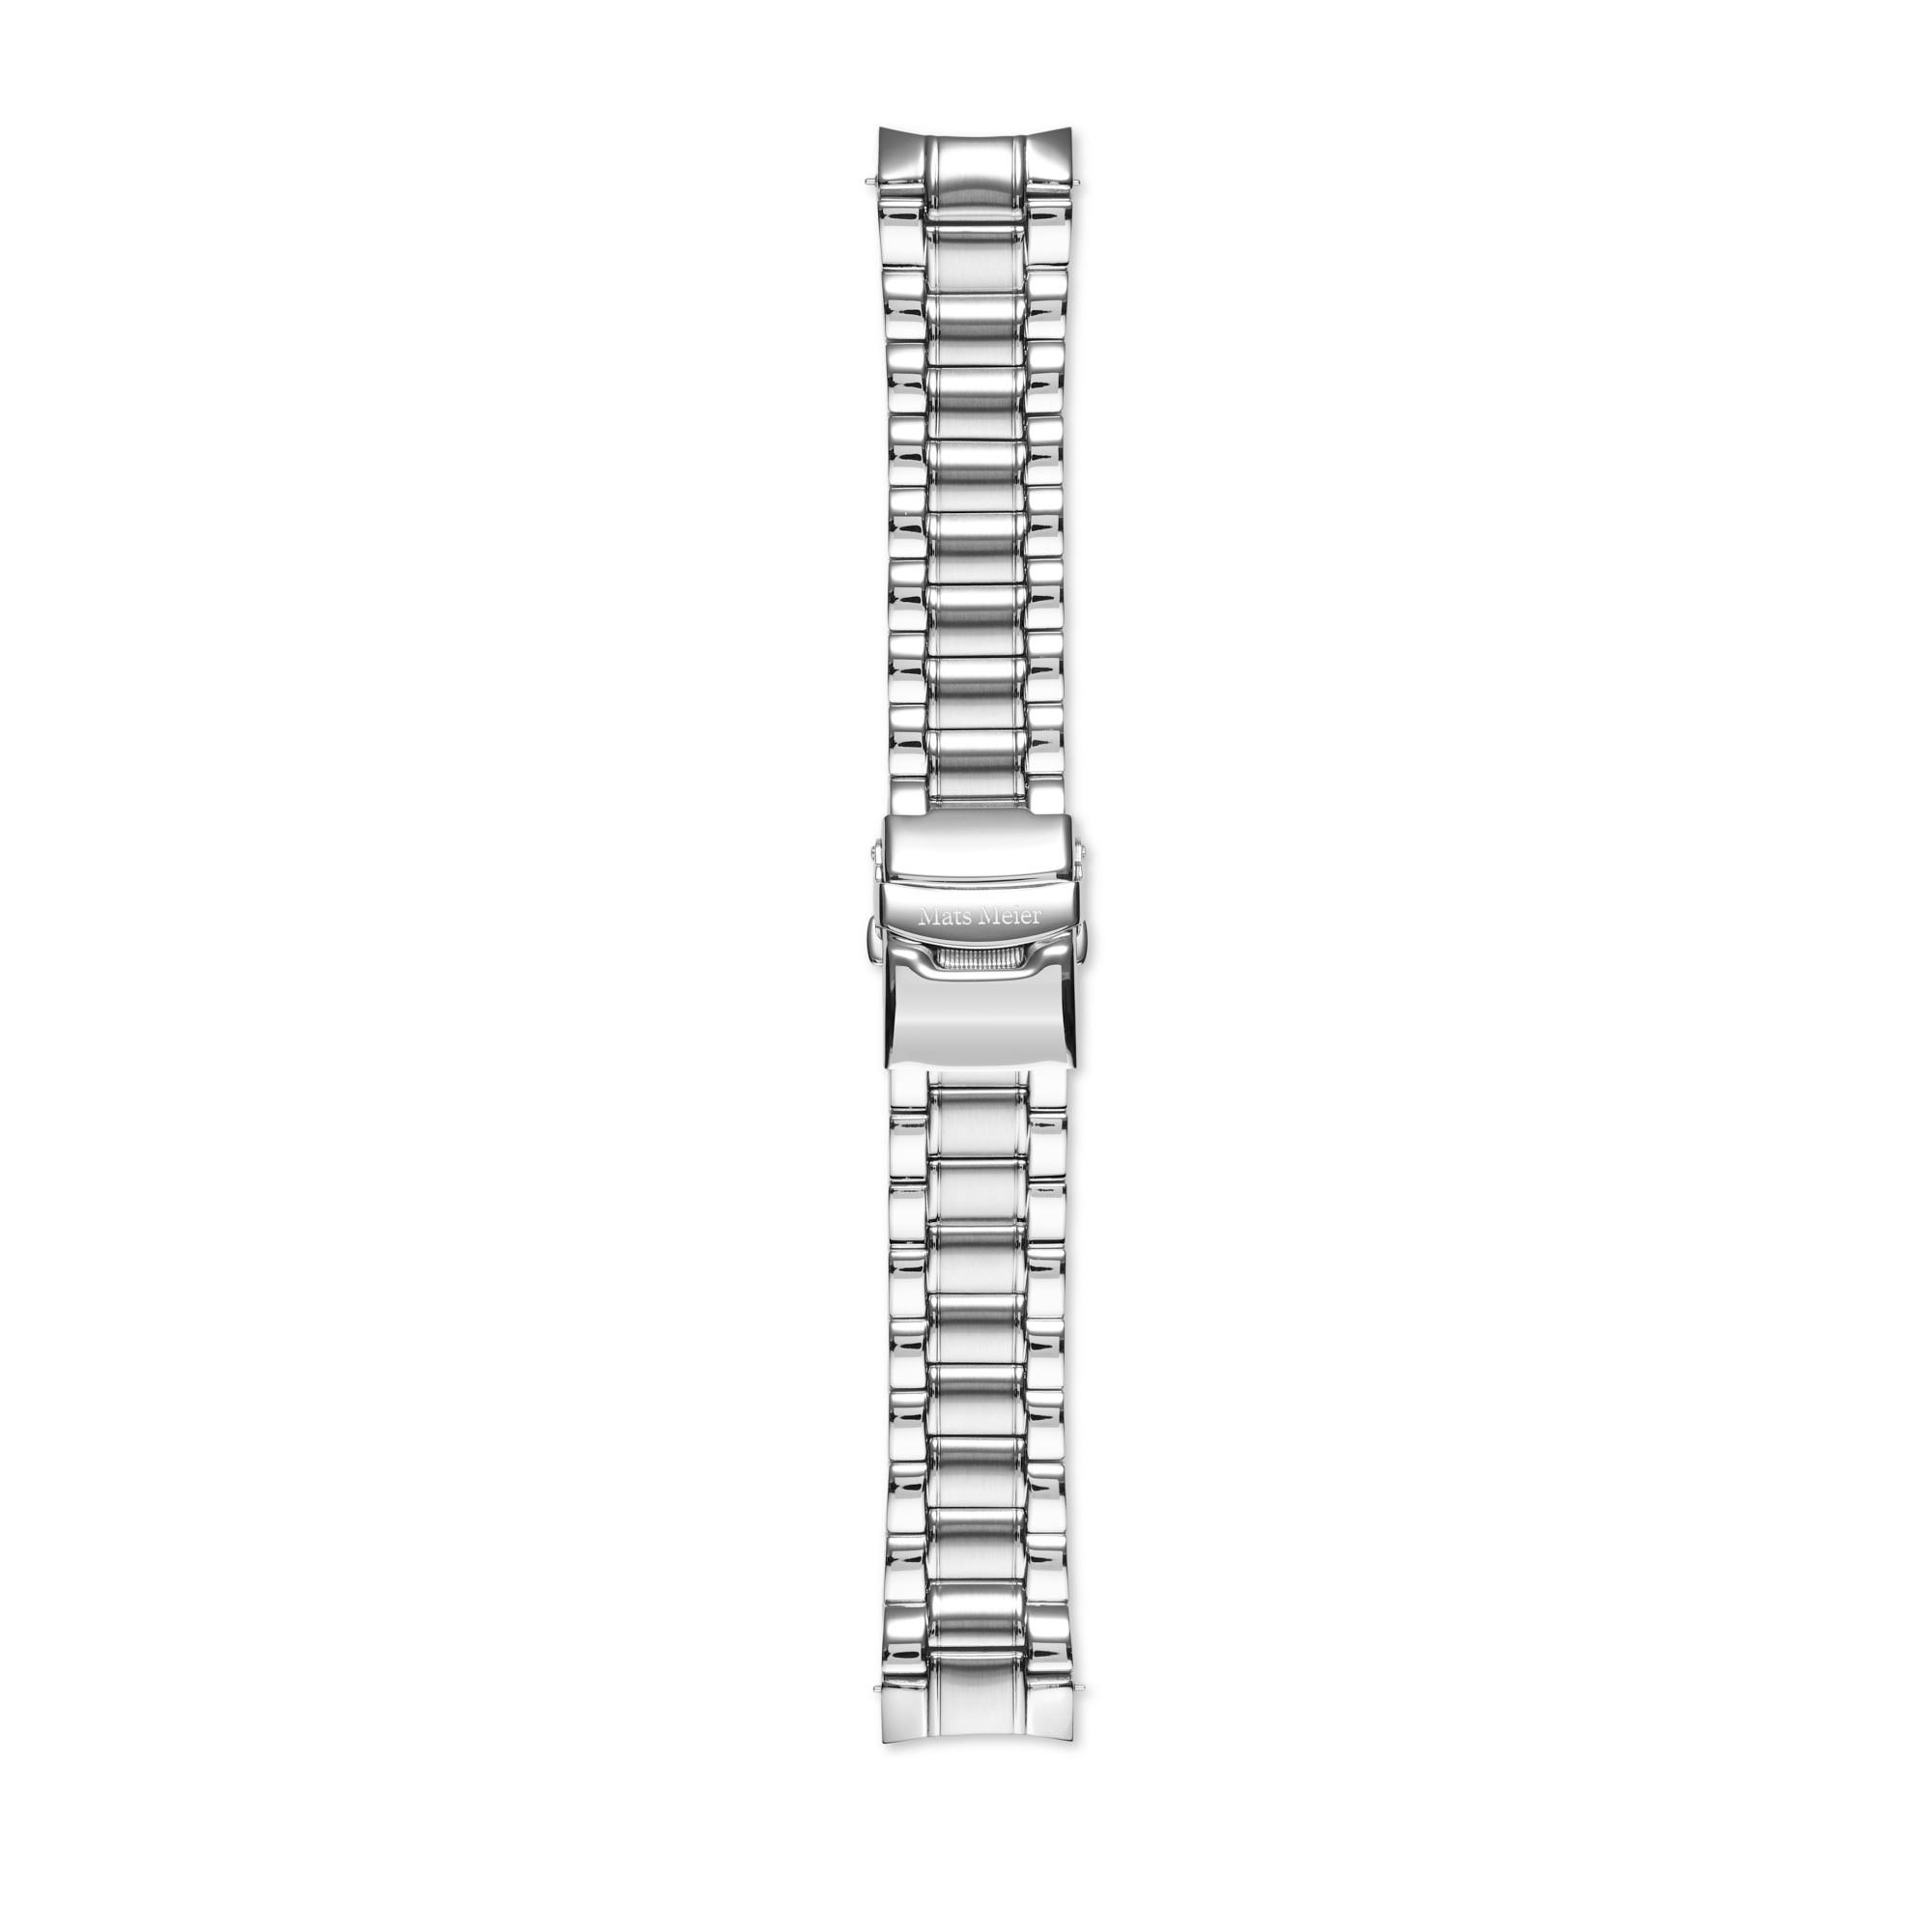 Mats Meier Ponte Dei Salti stainless steel strap 22 mm silver colored